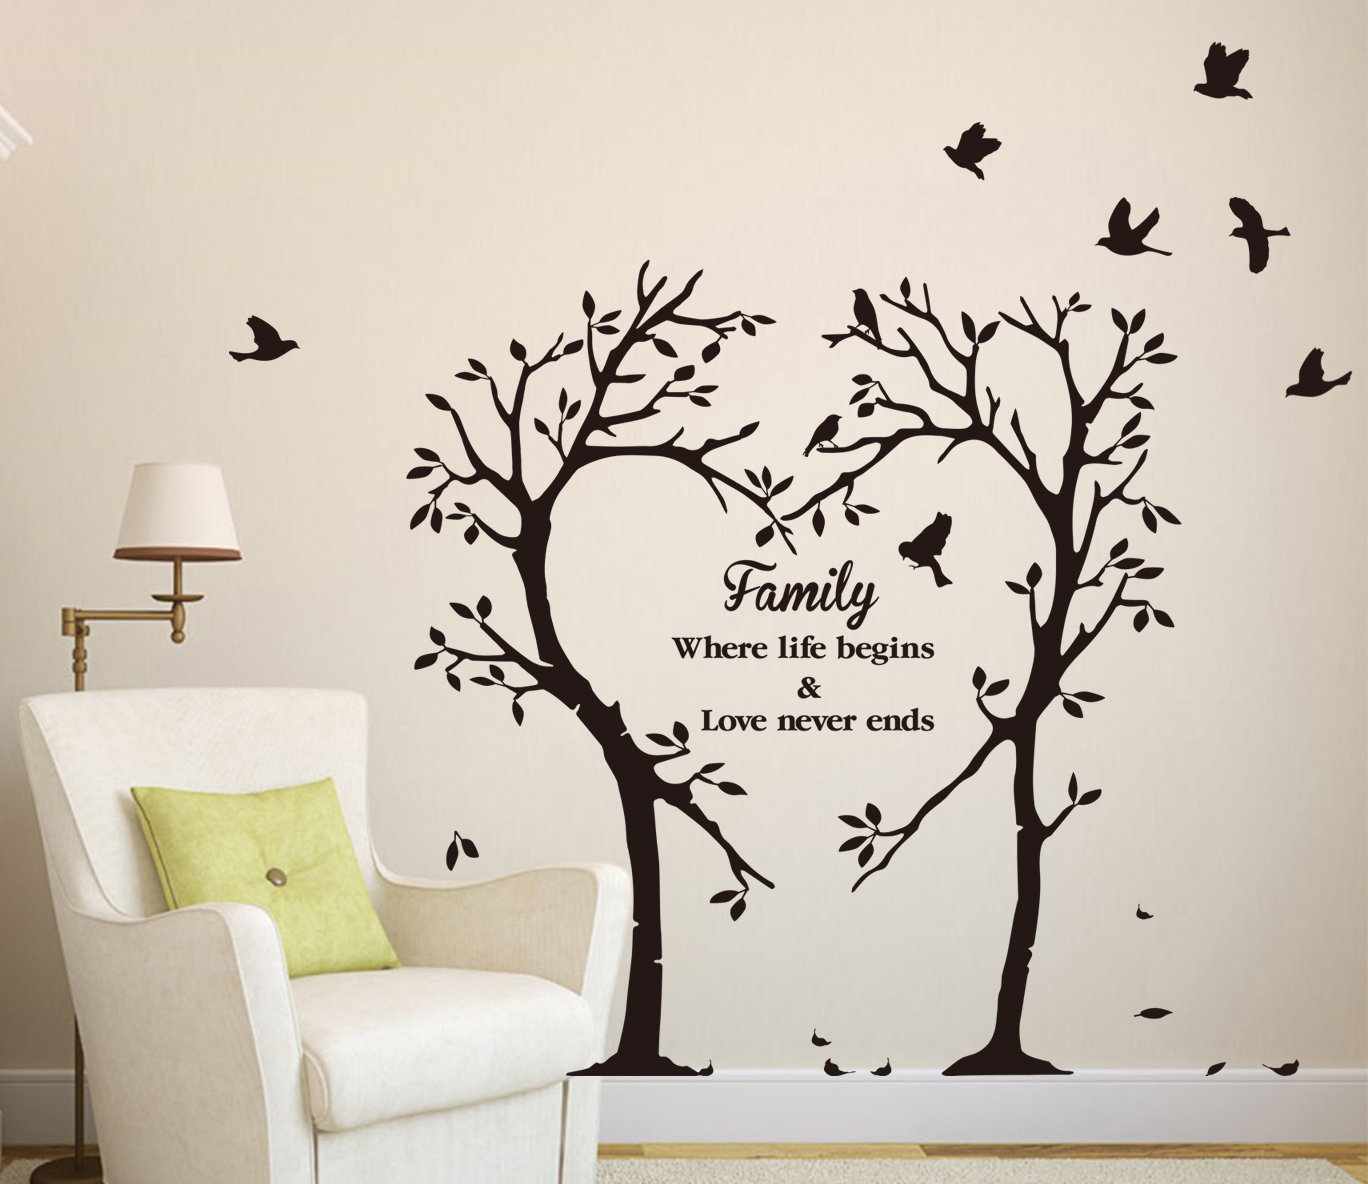 Large family inspirational love tree wall art sticker for Diy family tree wall mural